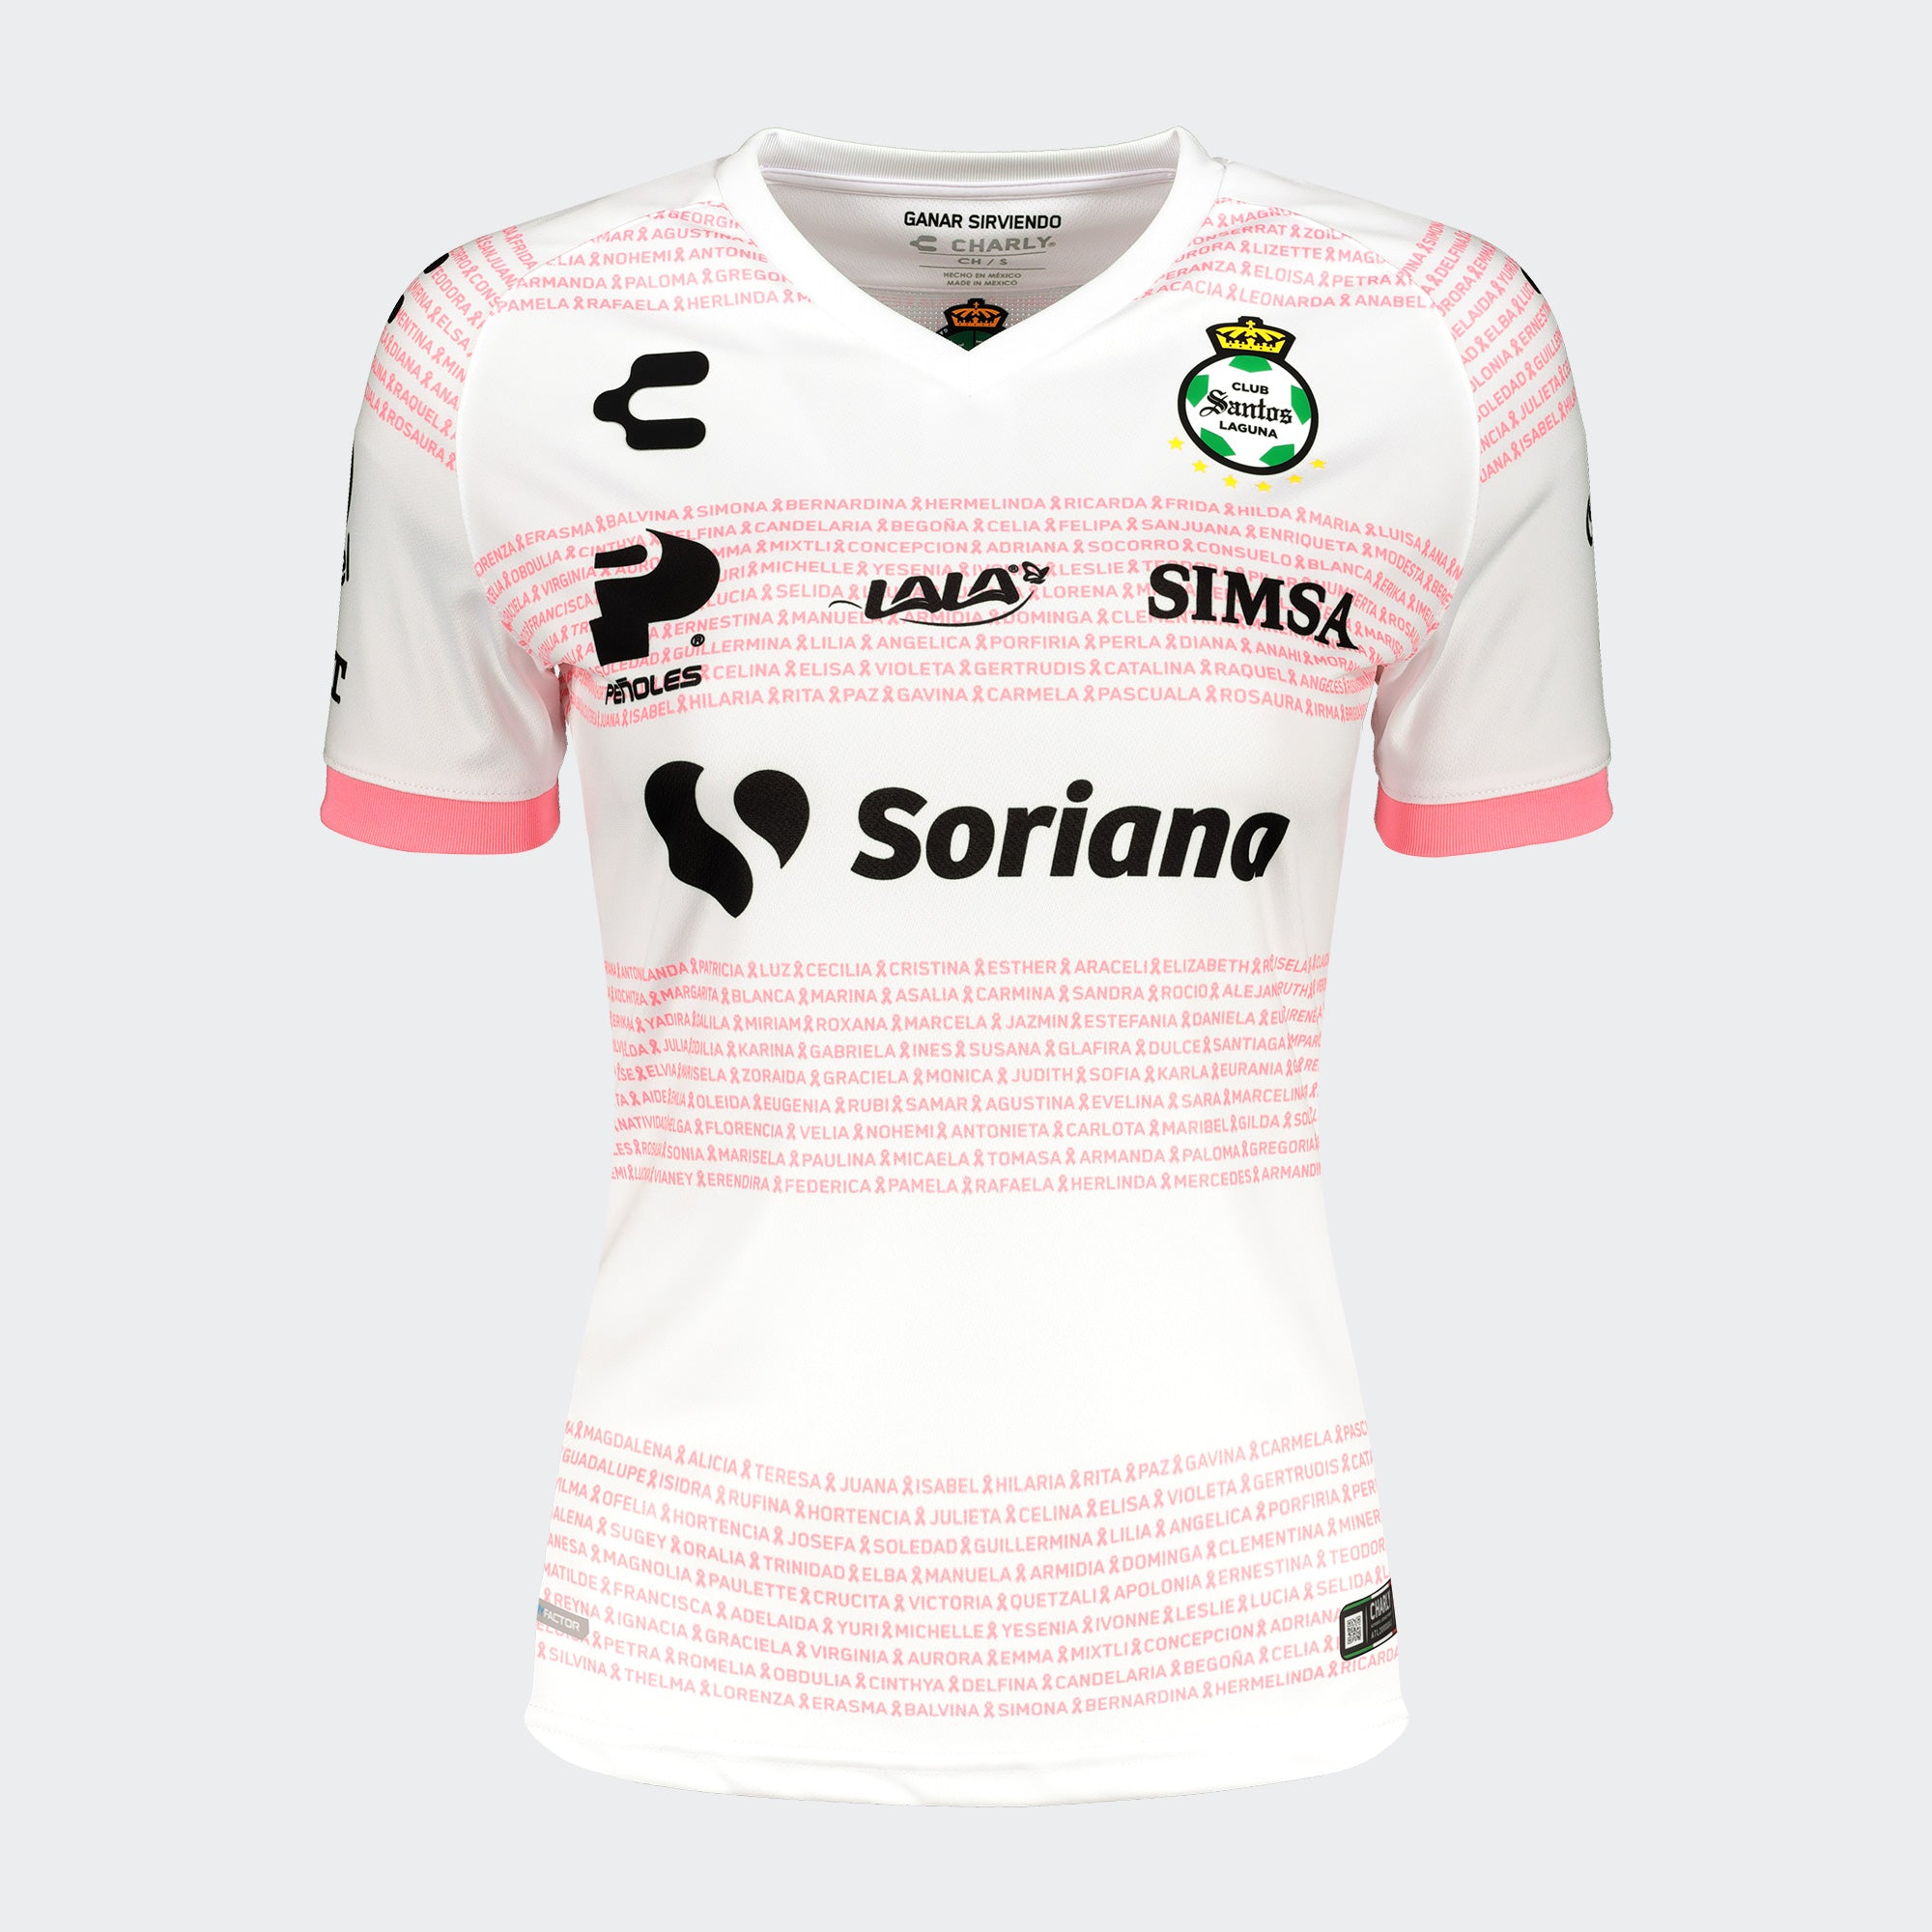 SANTOS LAGUNA PLAYERA BREAST CANCER 20/21 FEMENIL | SANTOS LAGUNA BREAST CANCER JERSEY 20/21 WOMEN'S